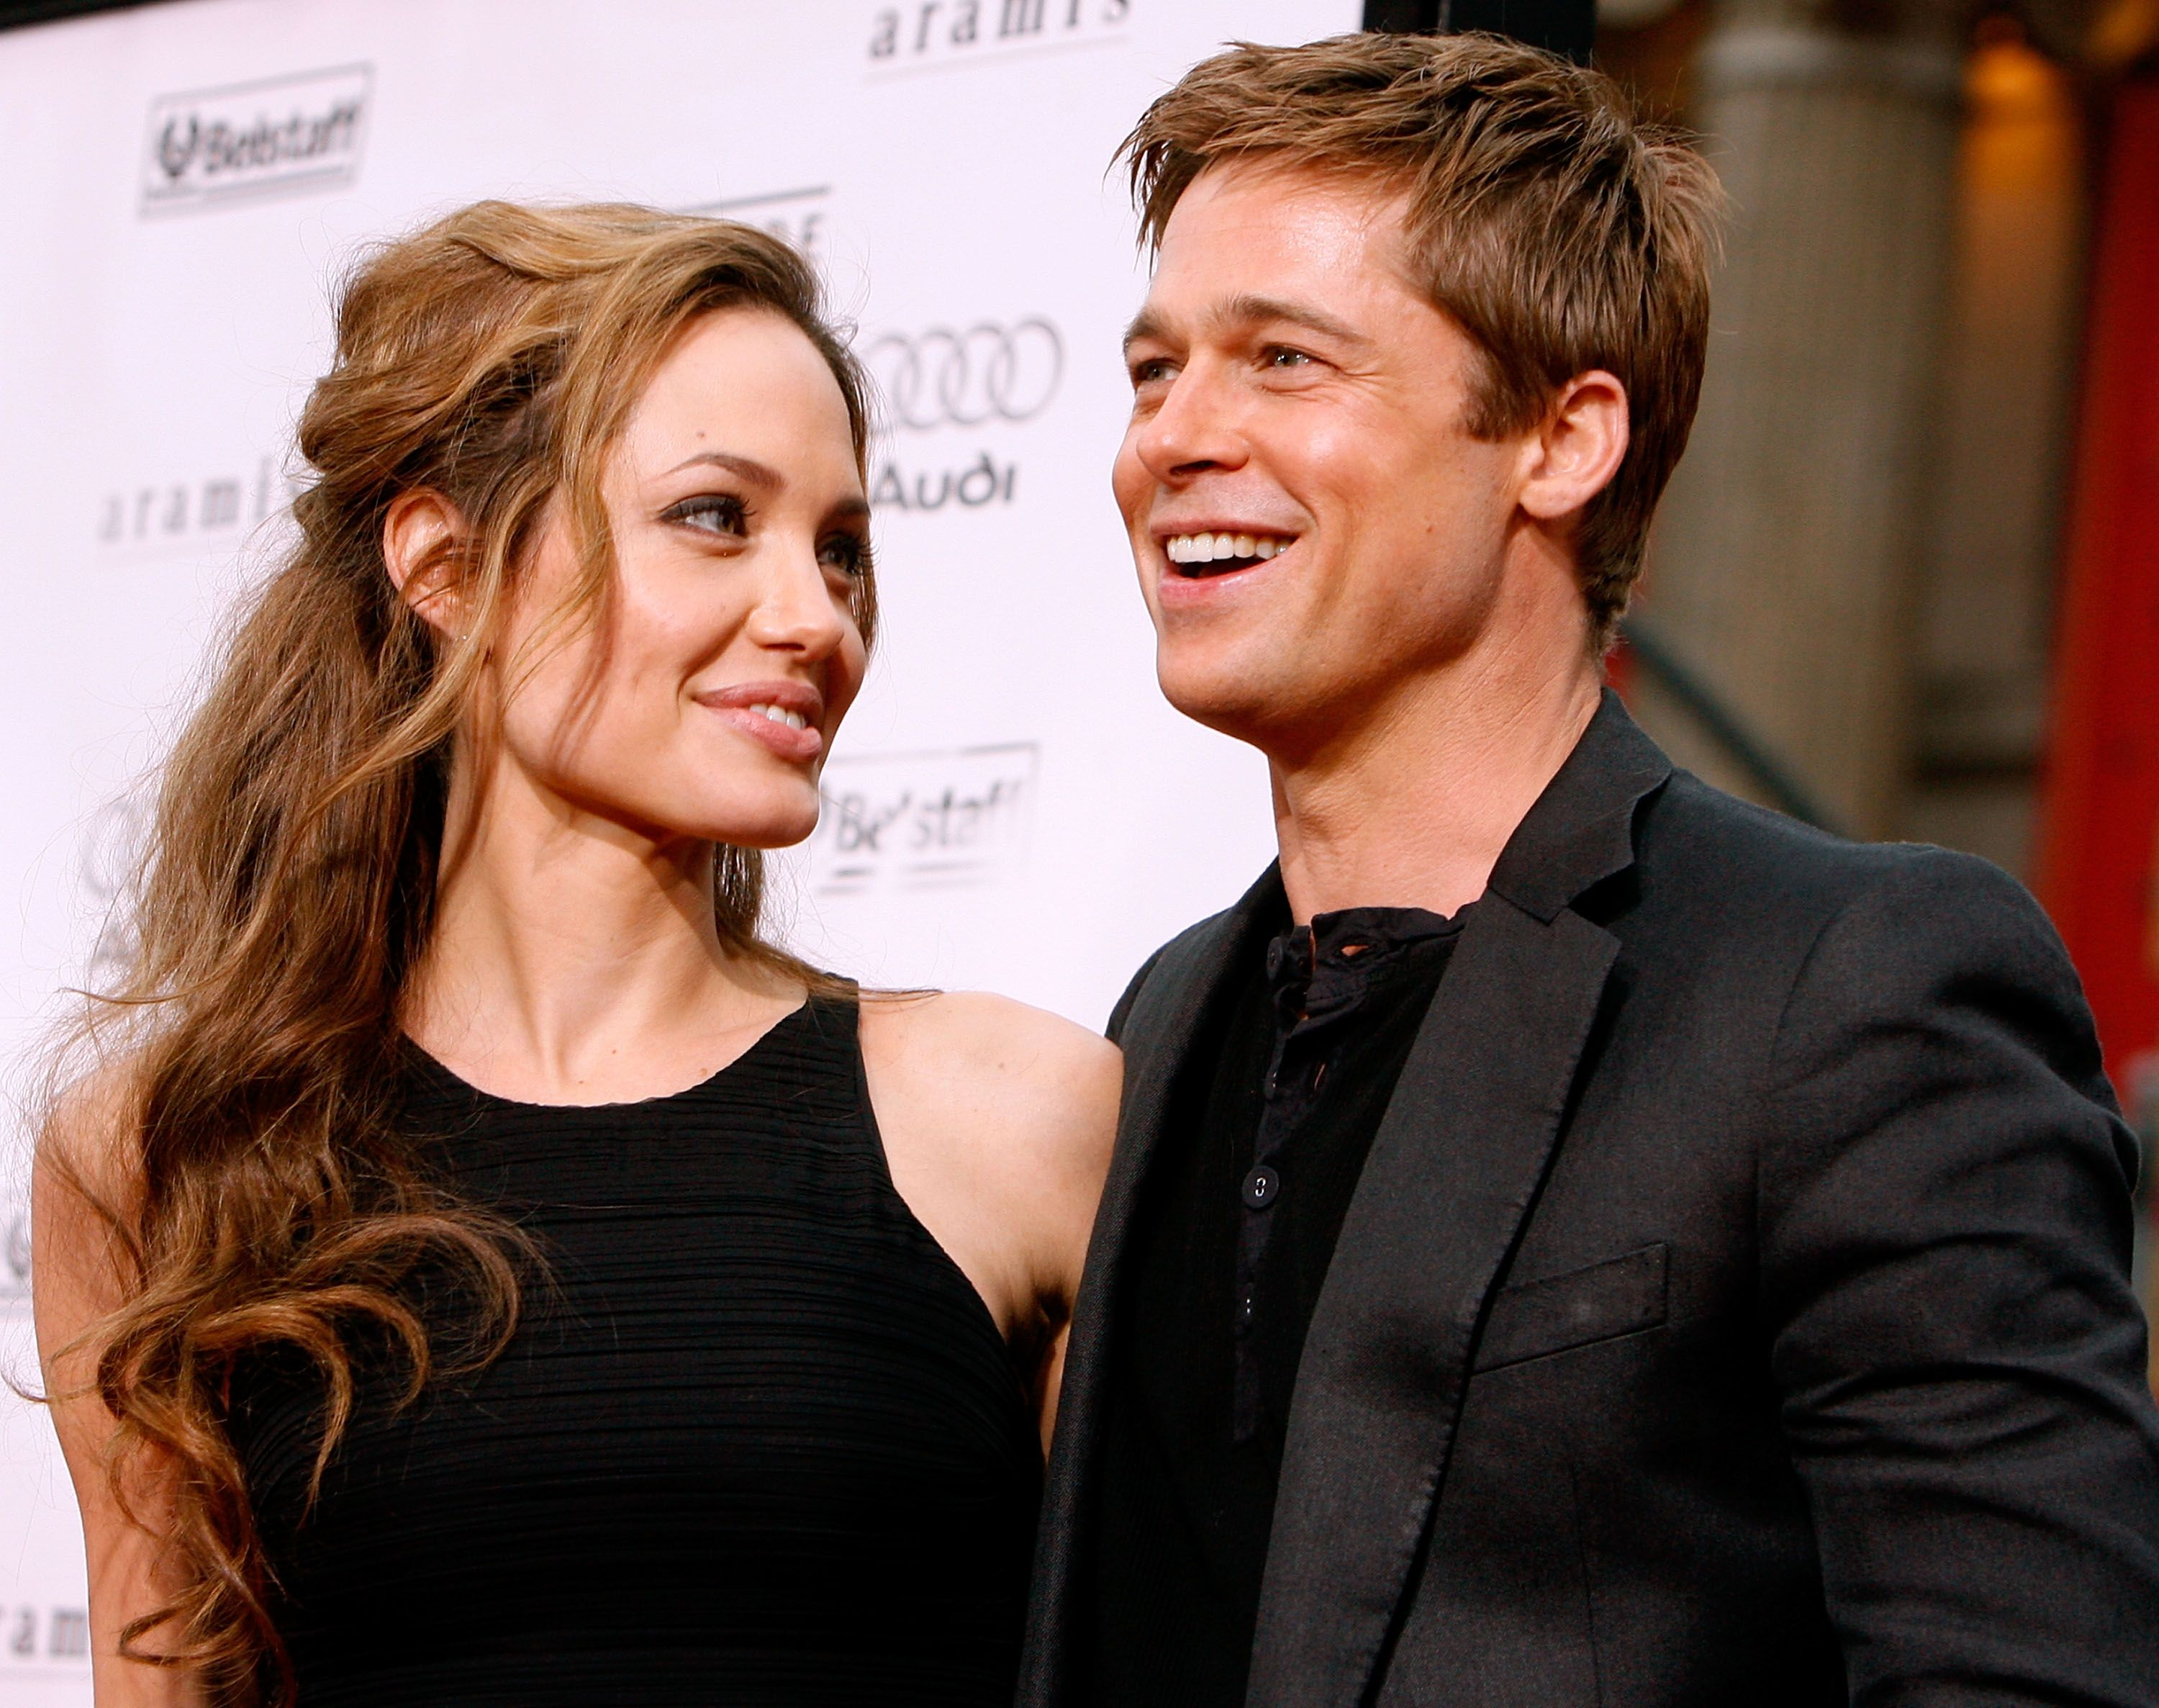 """Angelina Jolie and Brad Pitt during the Warner Bros. premiere of the film """"Ocean's 13"""" at Grauman's Chinese Theatre on June 5, 2007 in Hollywood, California. 